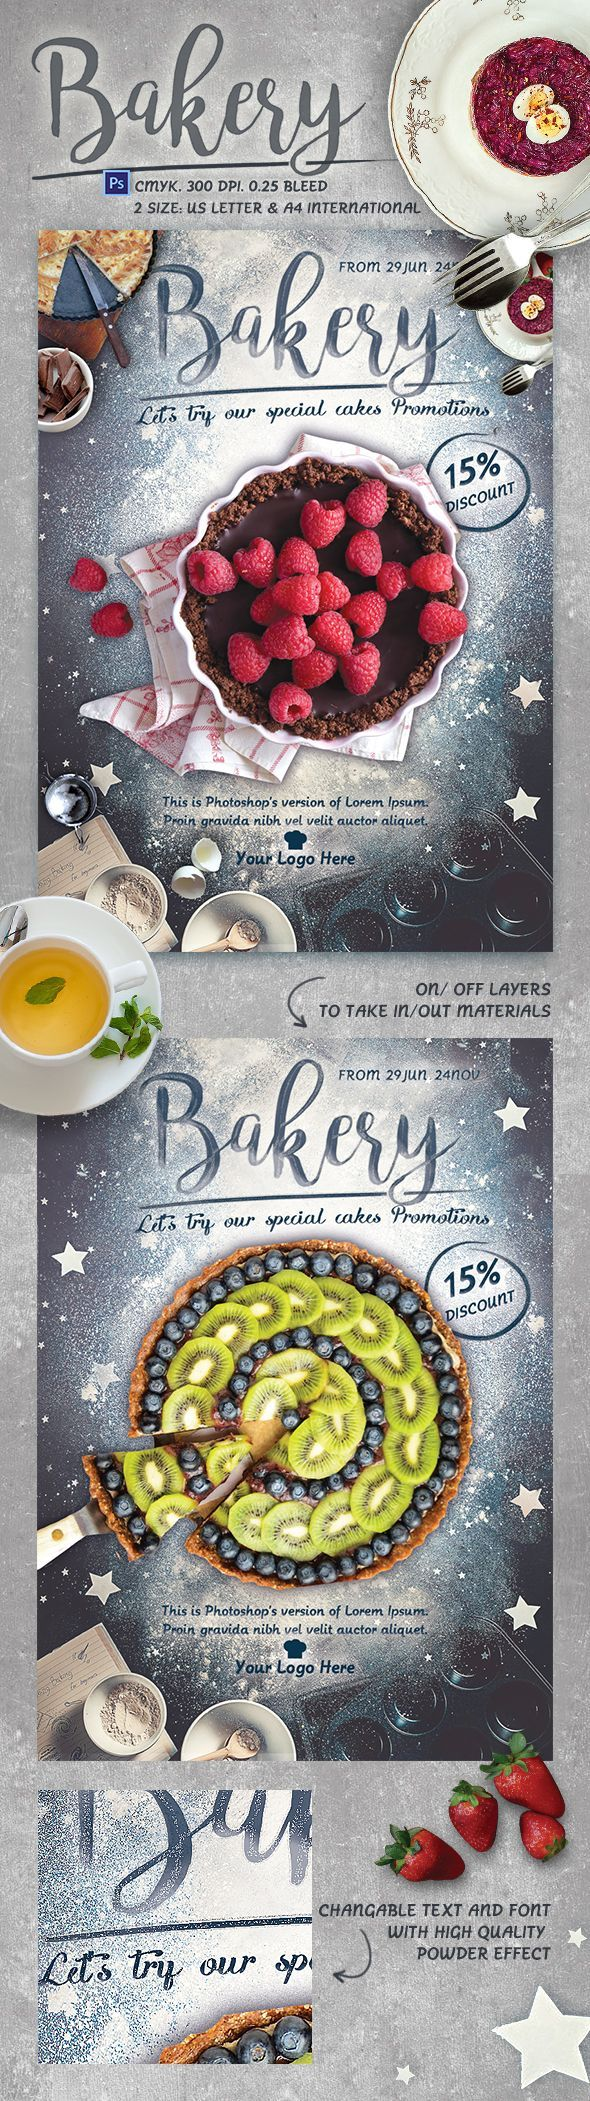 Bakery Promotion Flyer Template Bake Baker Baking Breakfast Cake Coffee Shop Cook Cooking Discount Hand Made Lotteria Mousse Powder